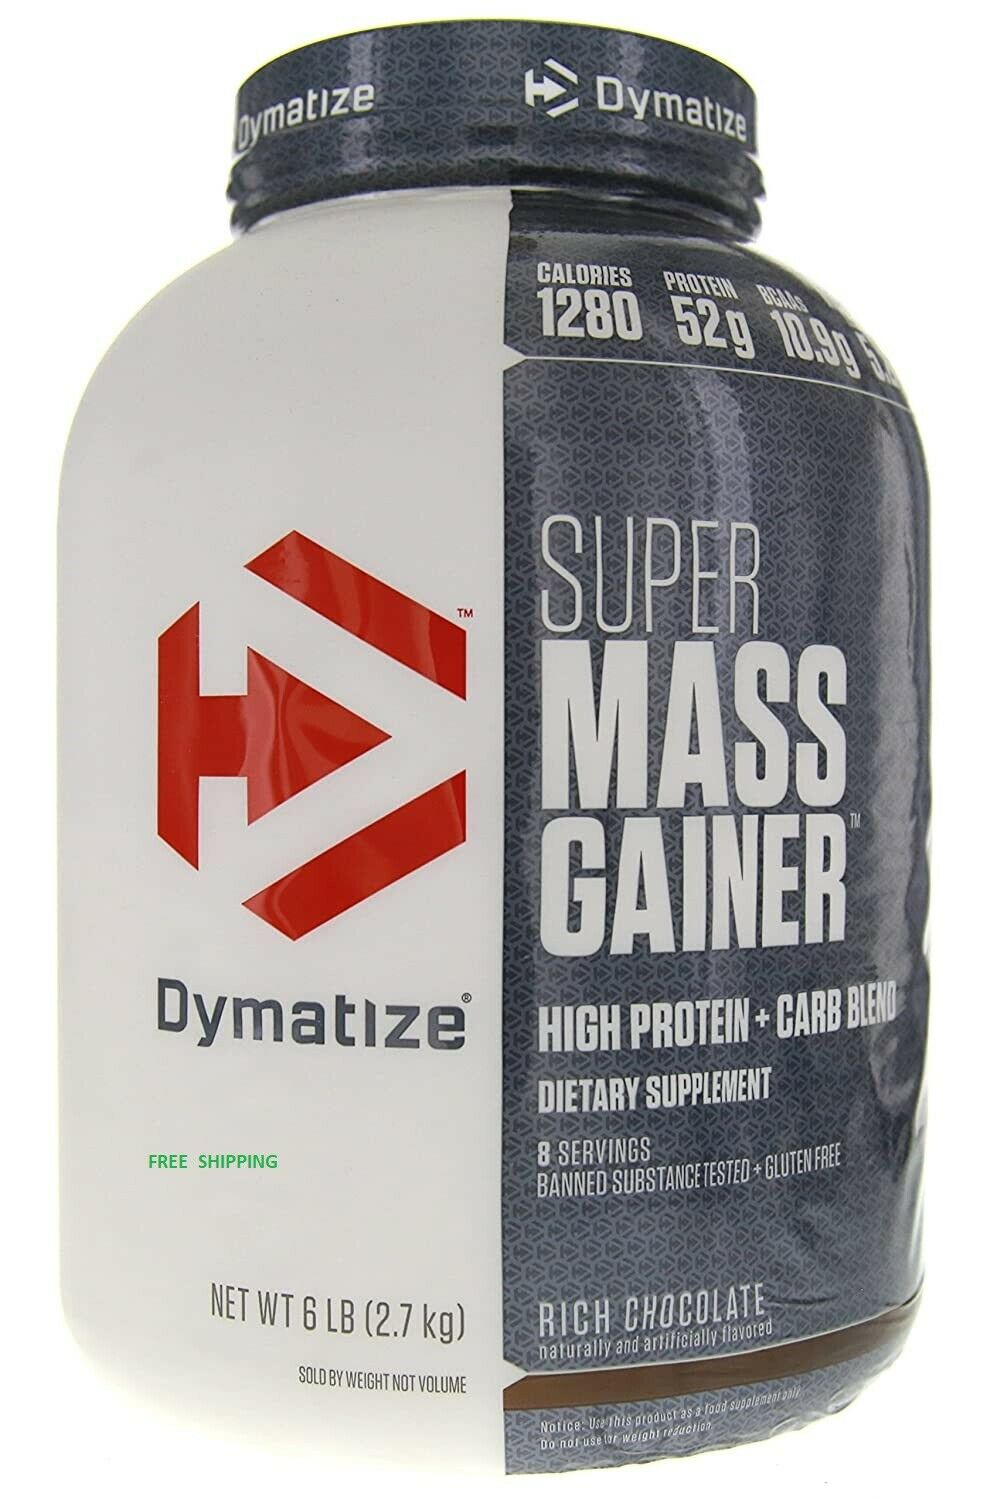 Dymatize Super Mass Gainer Chocolate Protein Powder 6 LBS- F